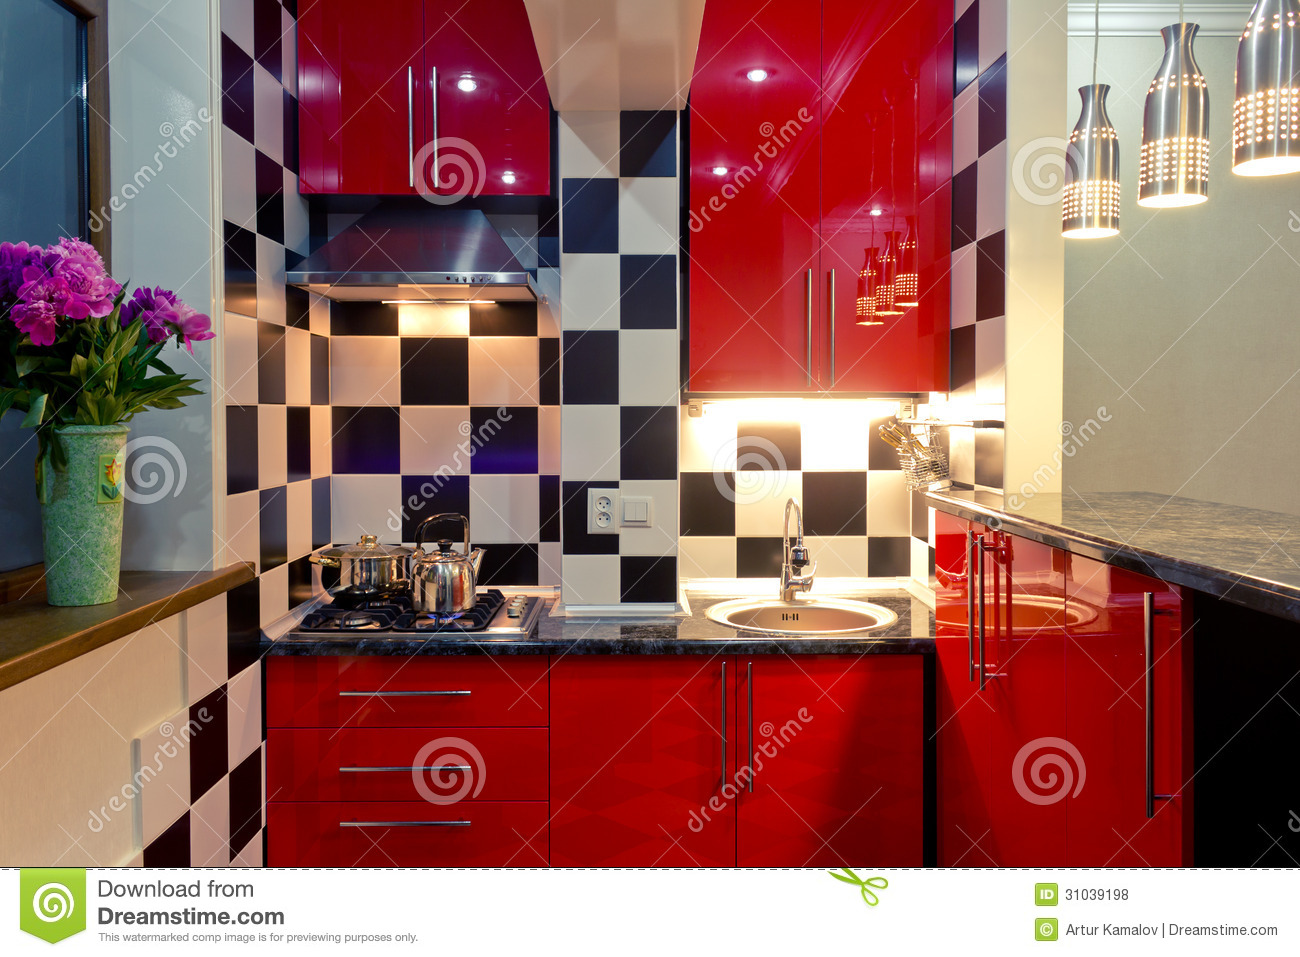 small kitchen interior - Small Kitchen Interior